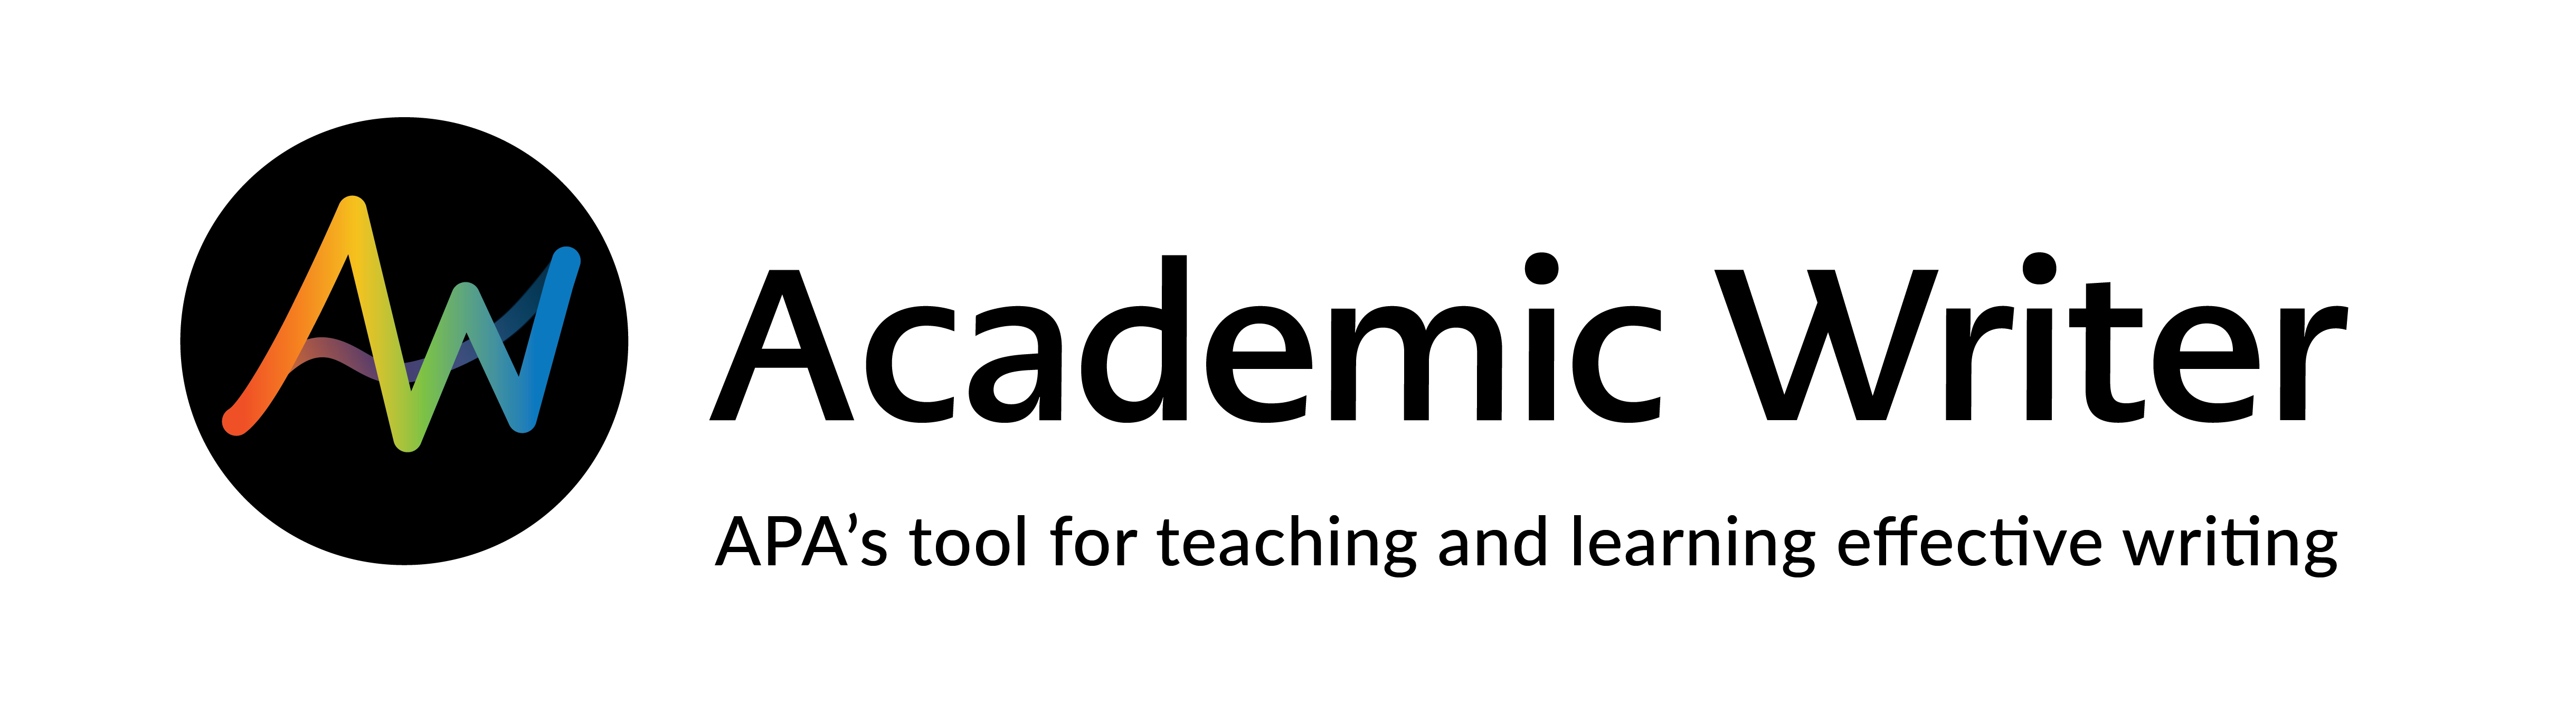 Academic Writer Logo and Link